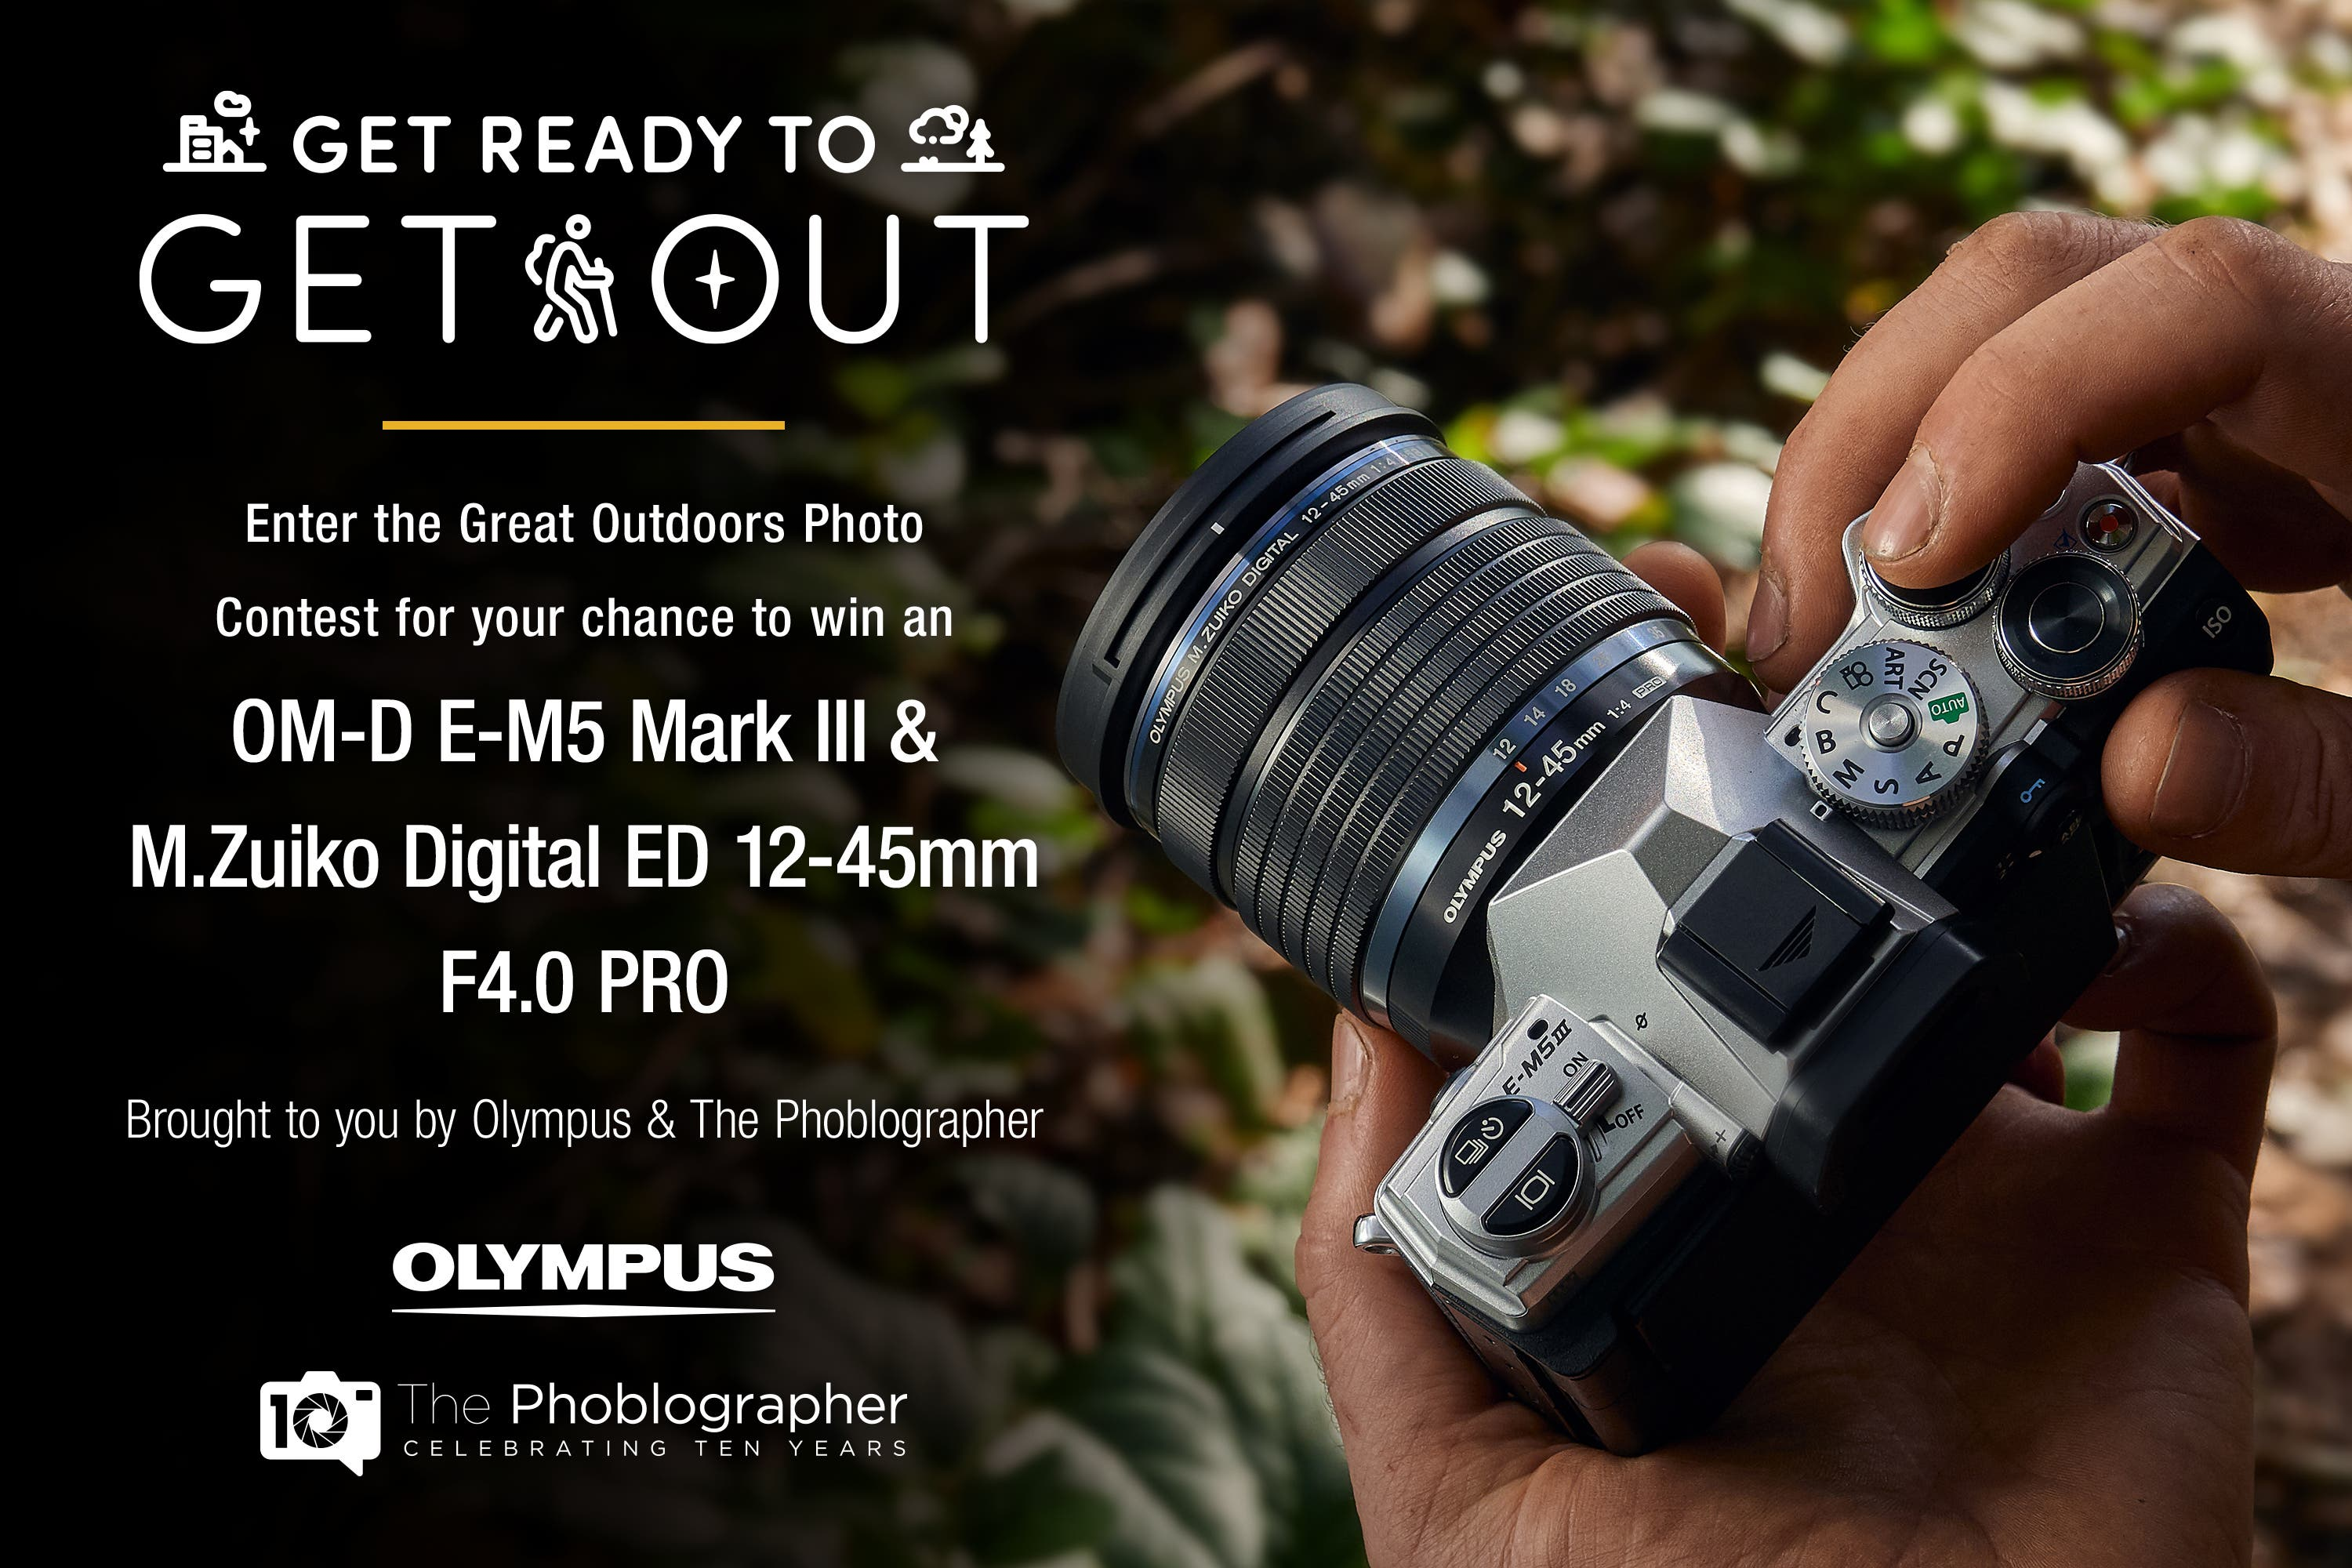 Photograph the Great Outdoors? You Can Win This Great Olympus Set